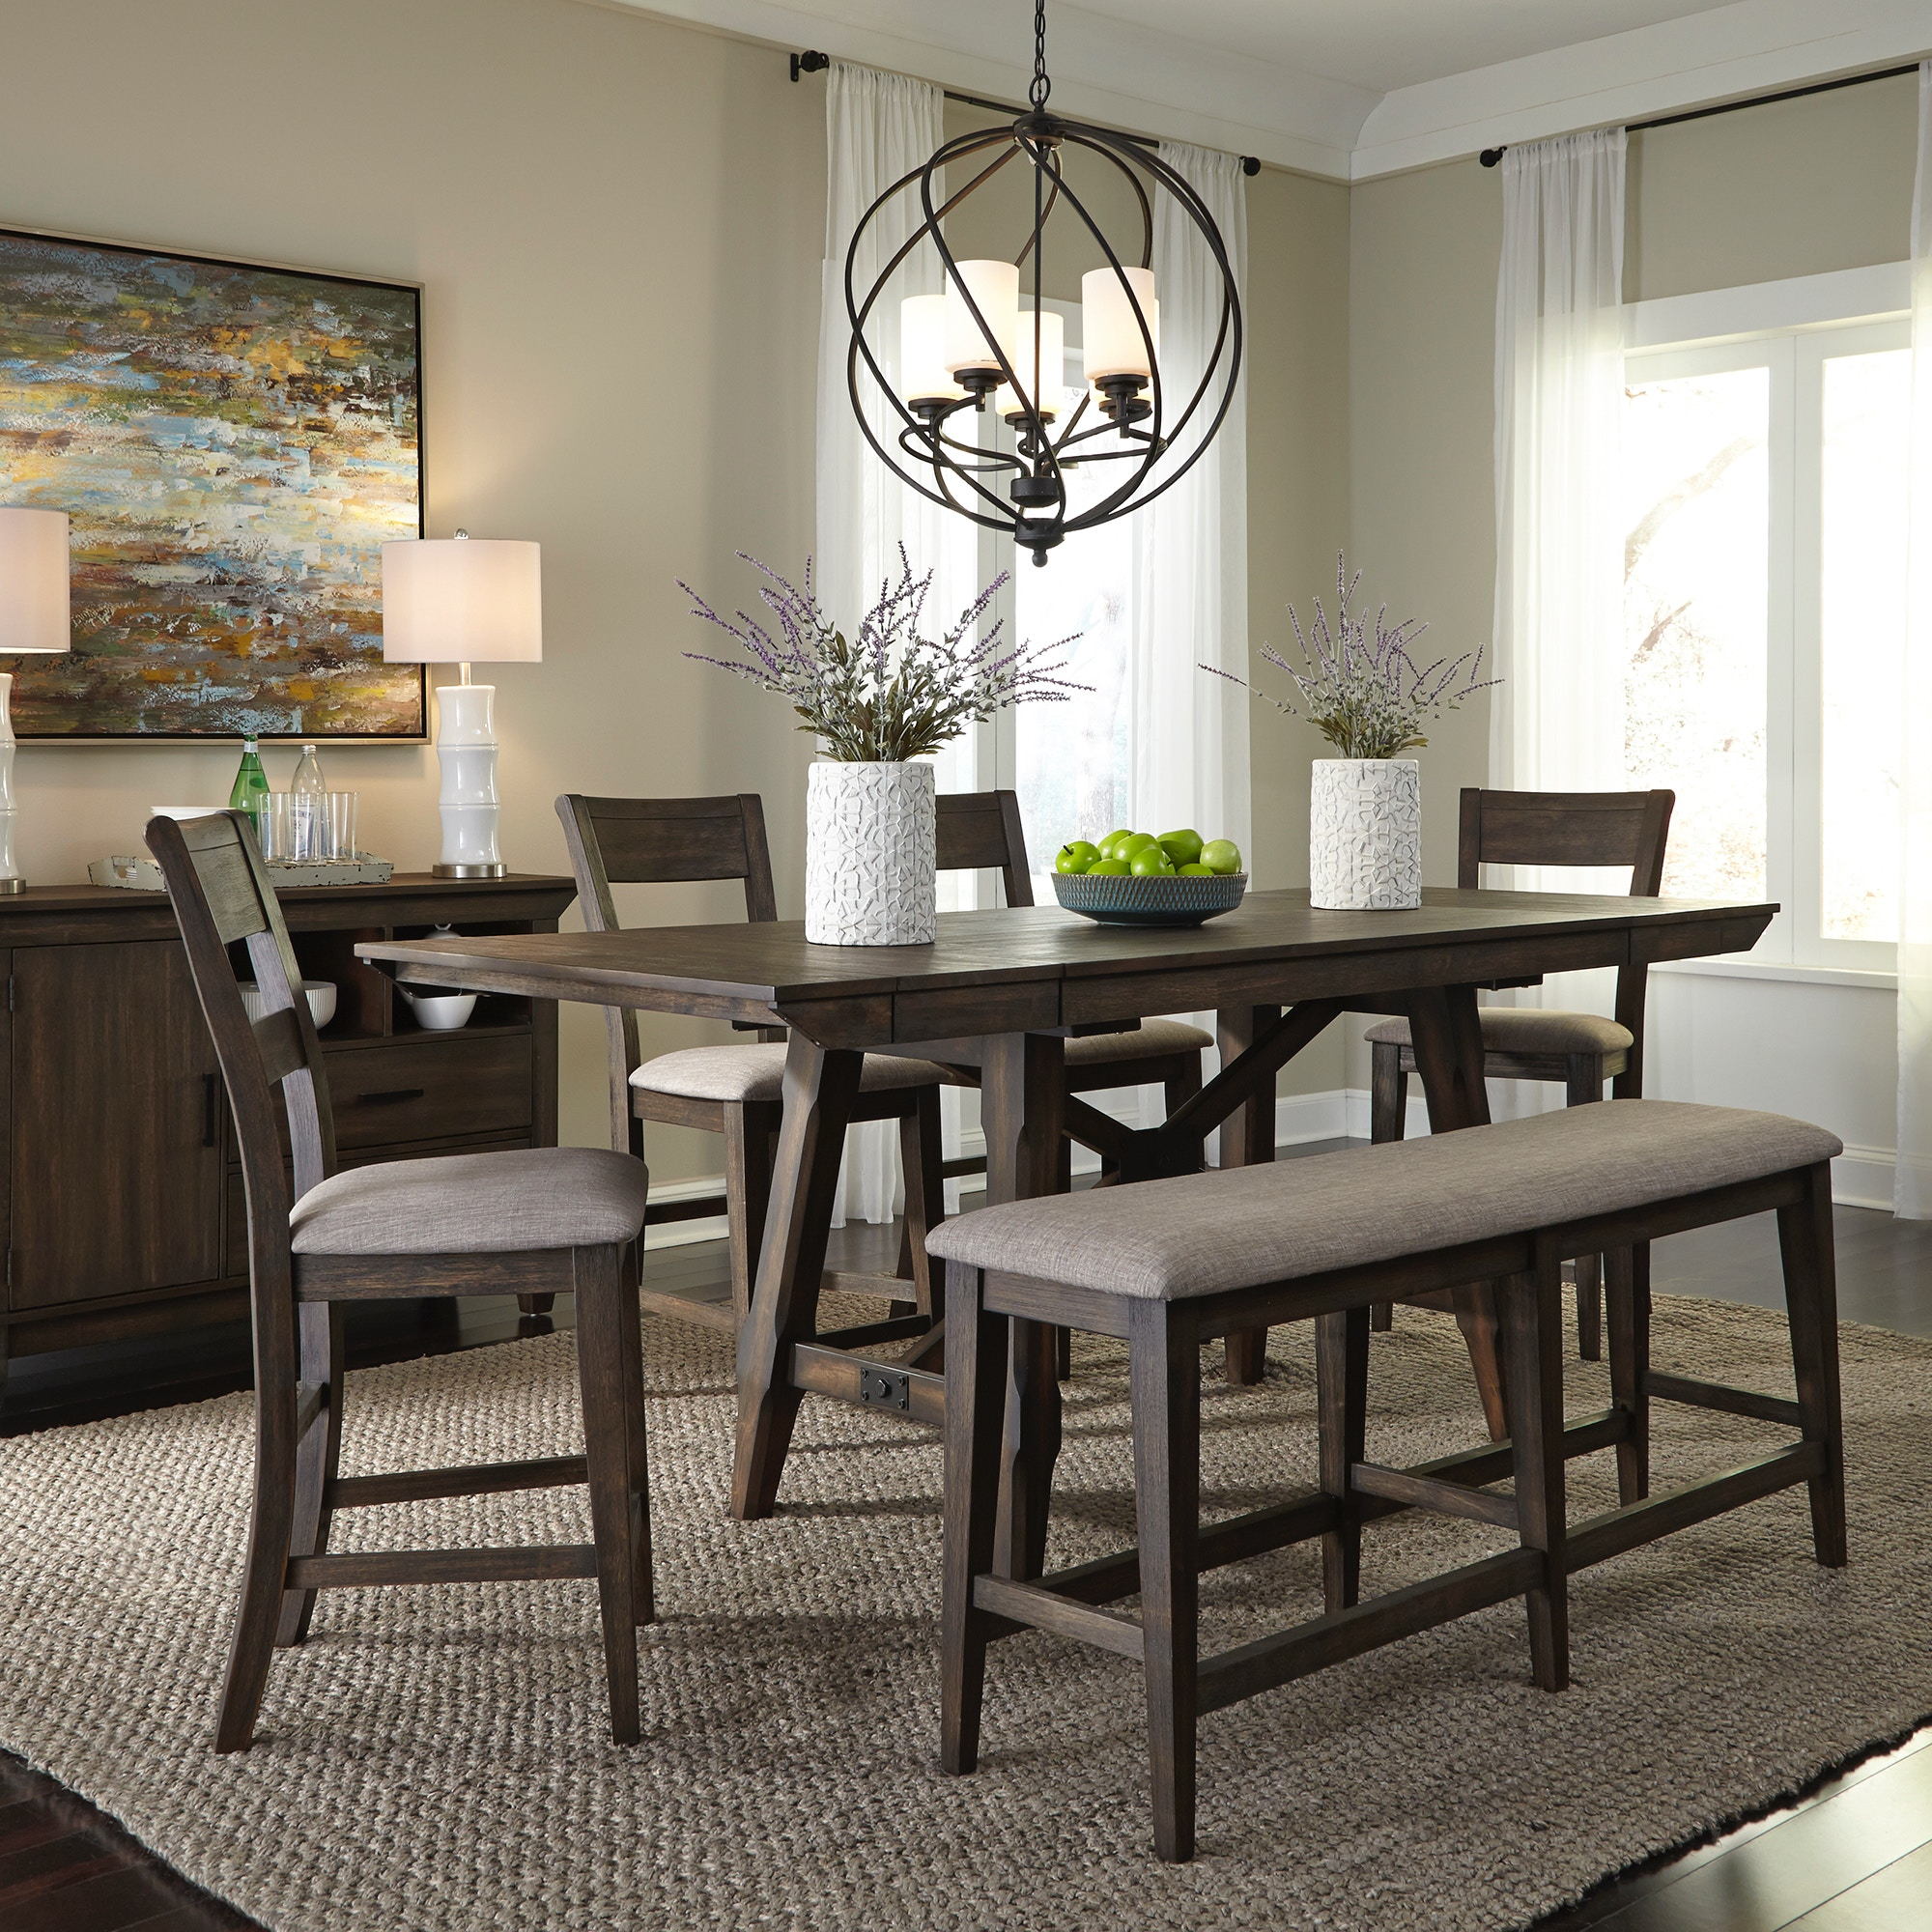 guide to dining room decor